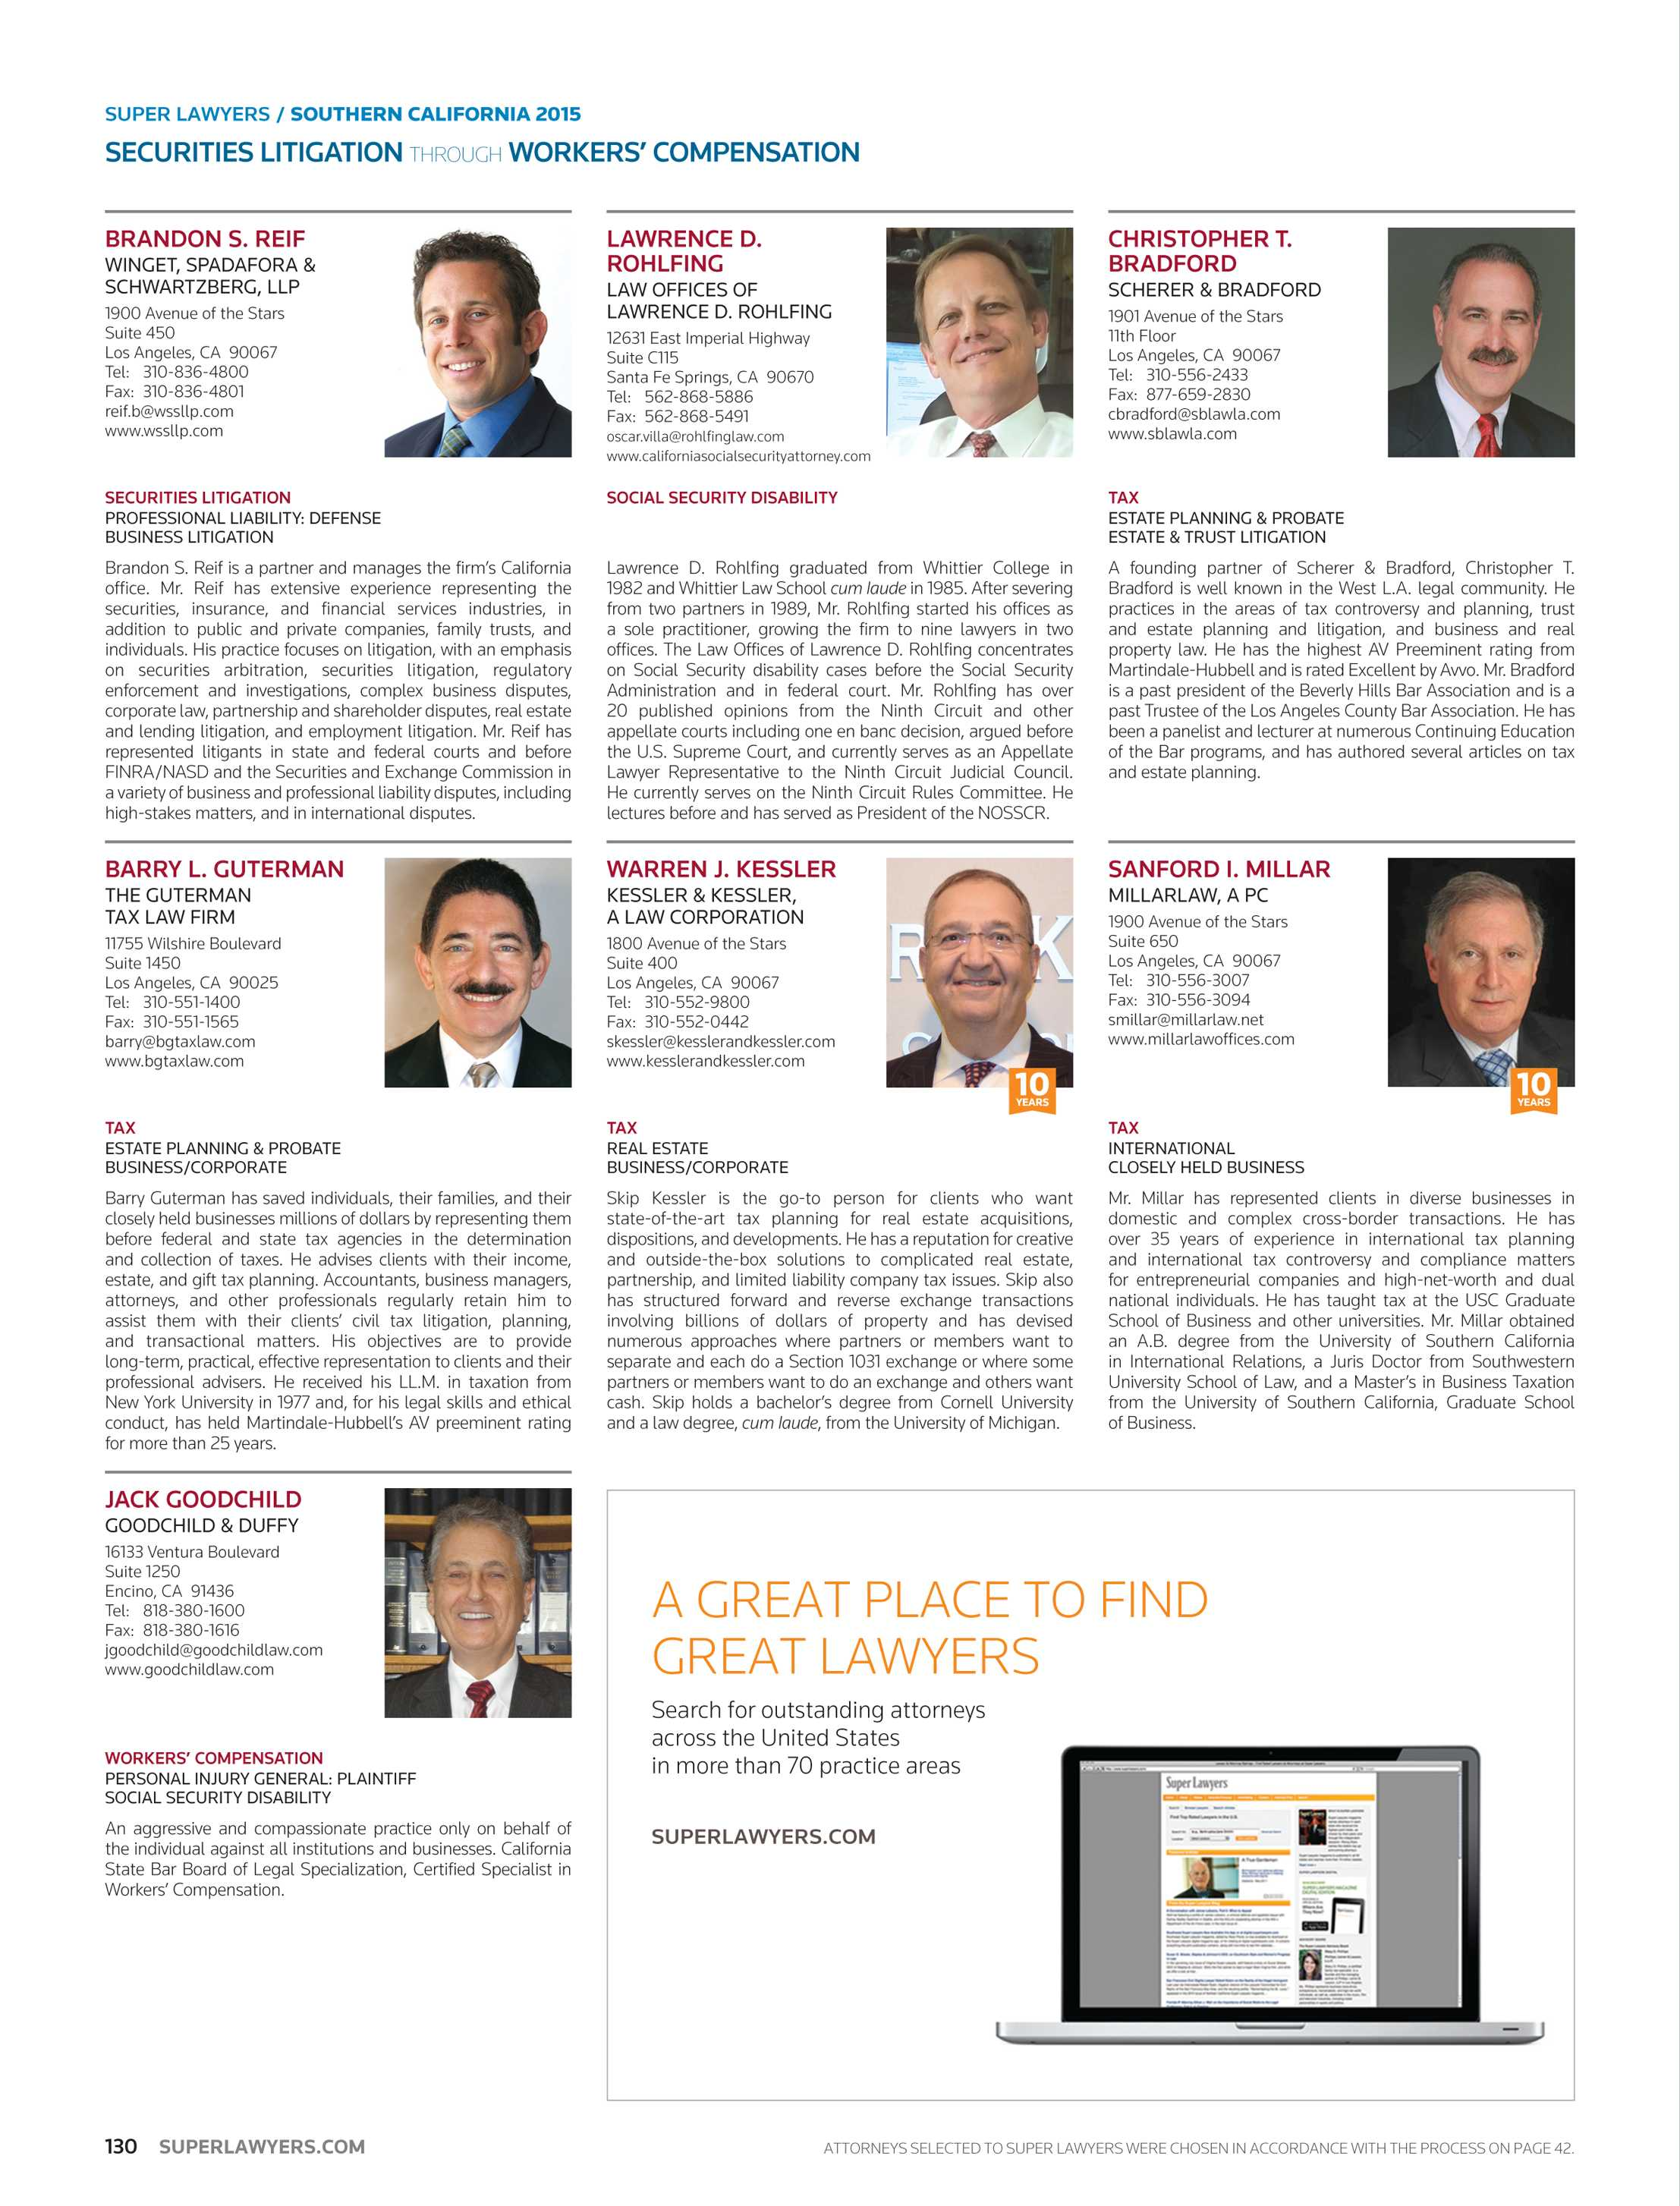 Super Lawyers Southern California 2015 Page 130